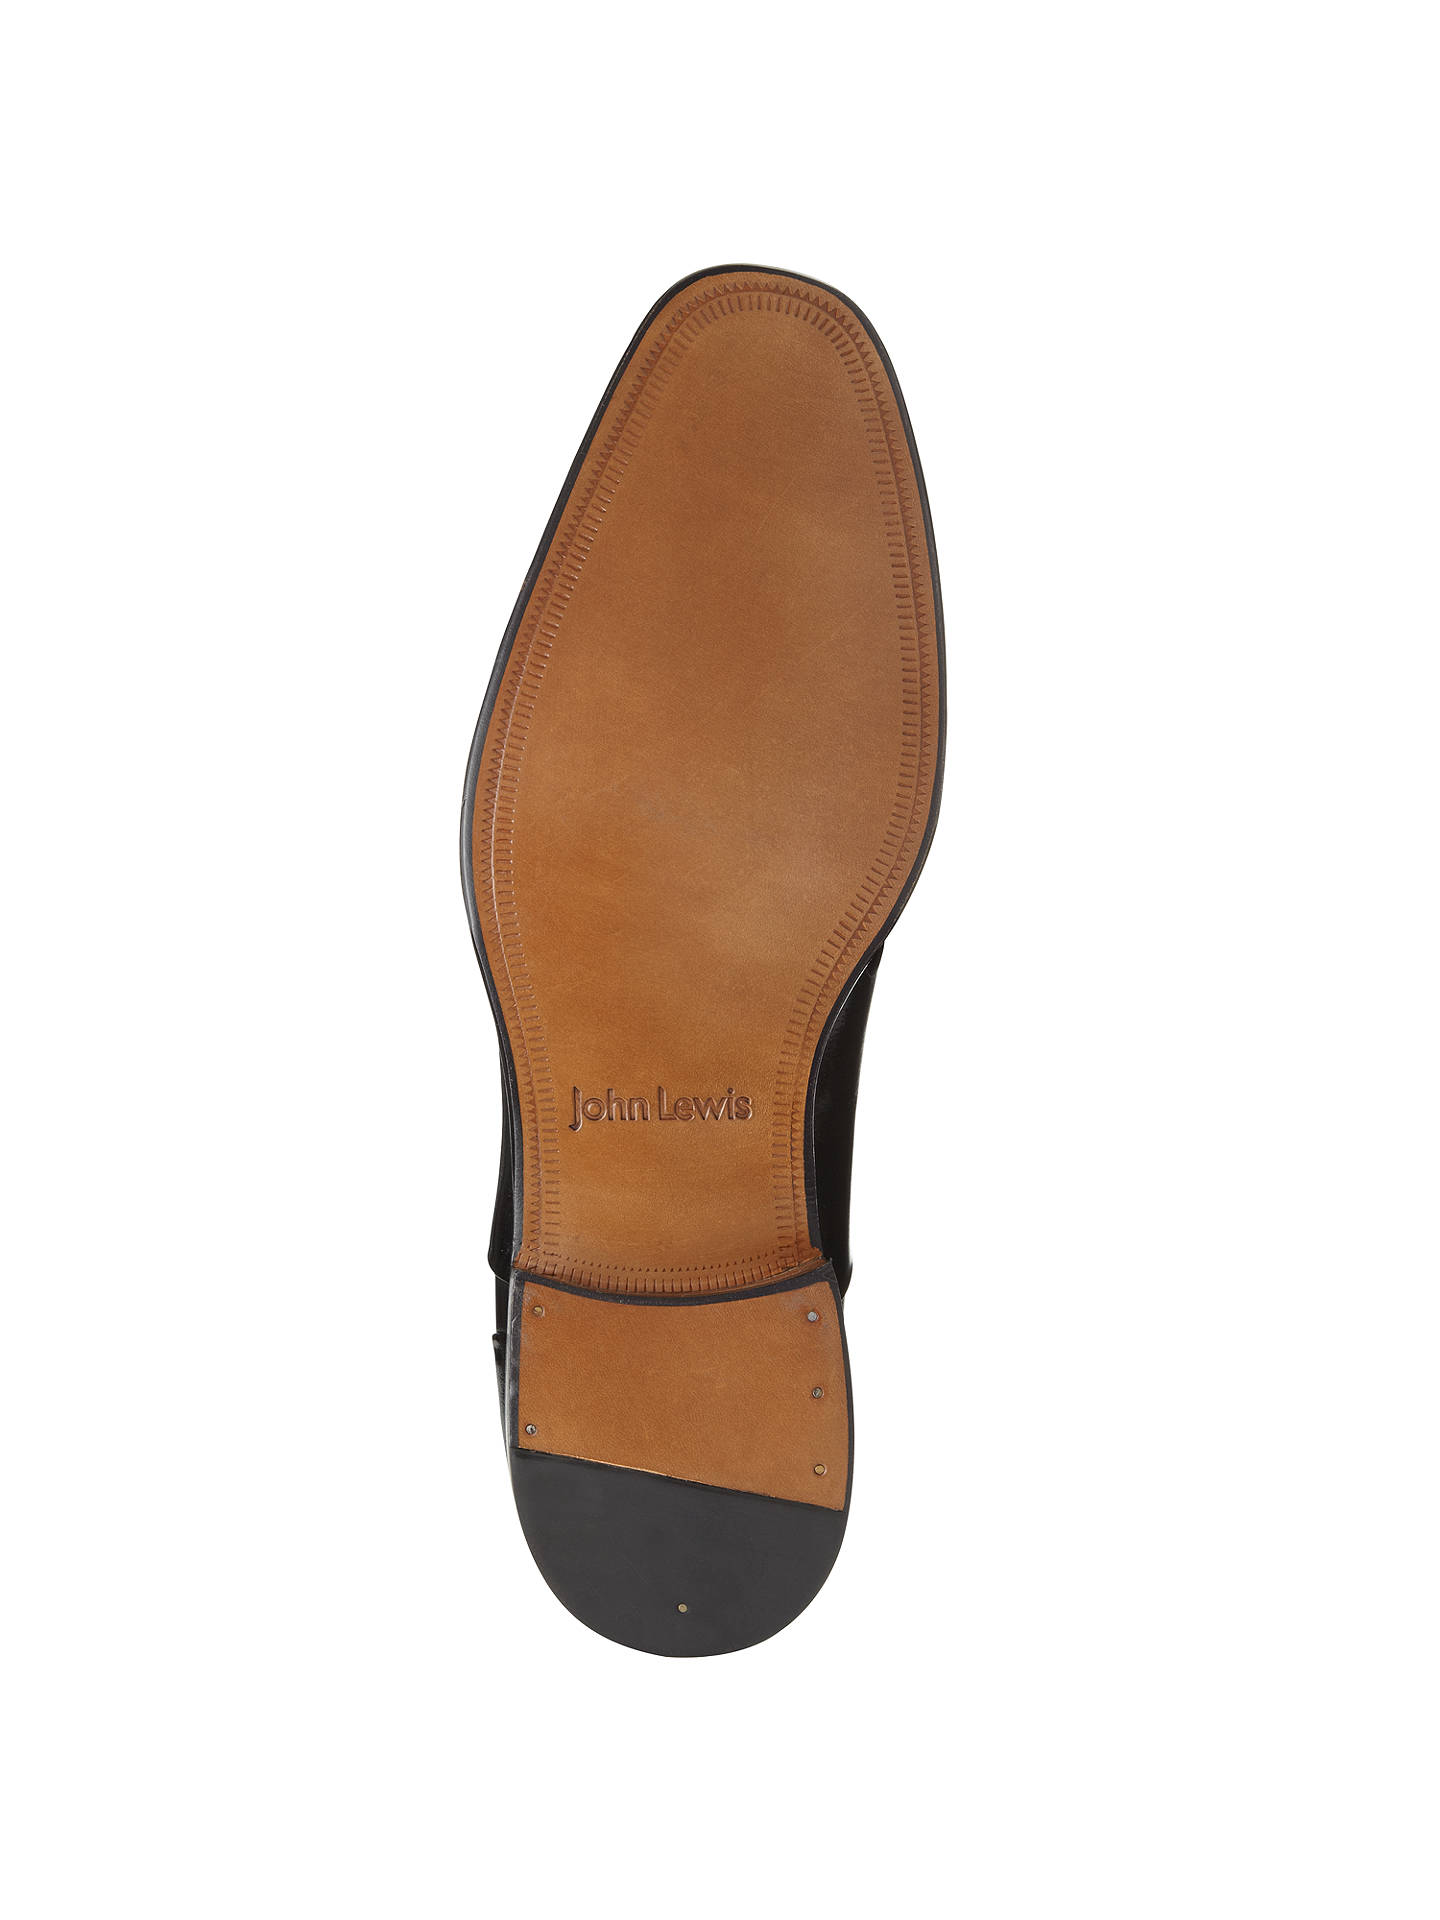 e91cdaa00f079 ... Buy John Lewis Goodwin Leather Oxford Shoes, Black, 7 Online at  johnlewis.com